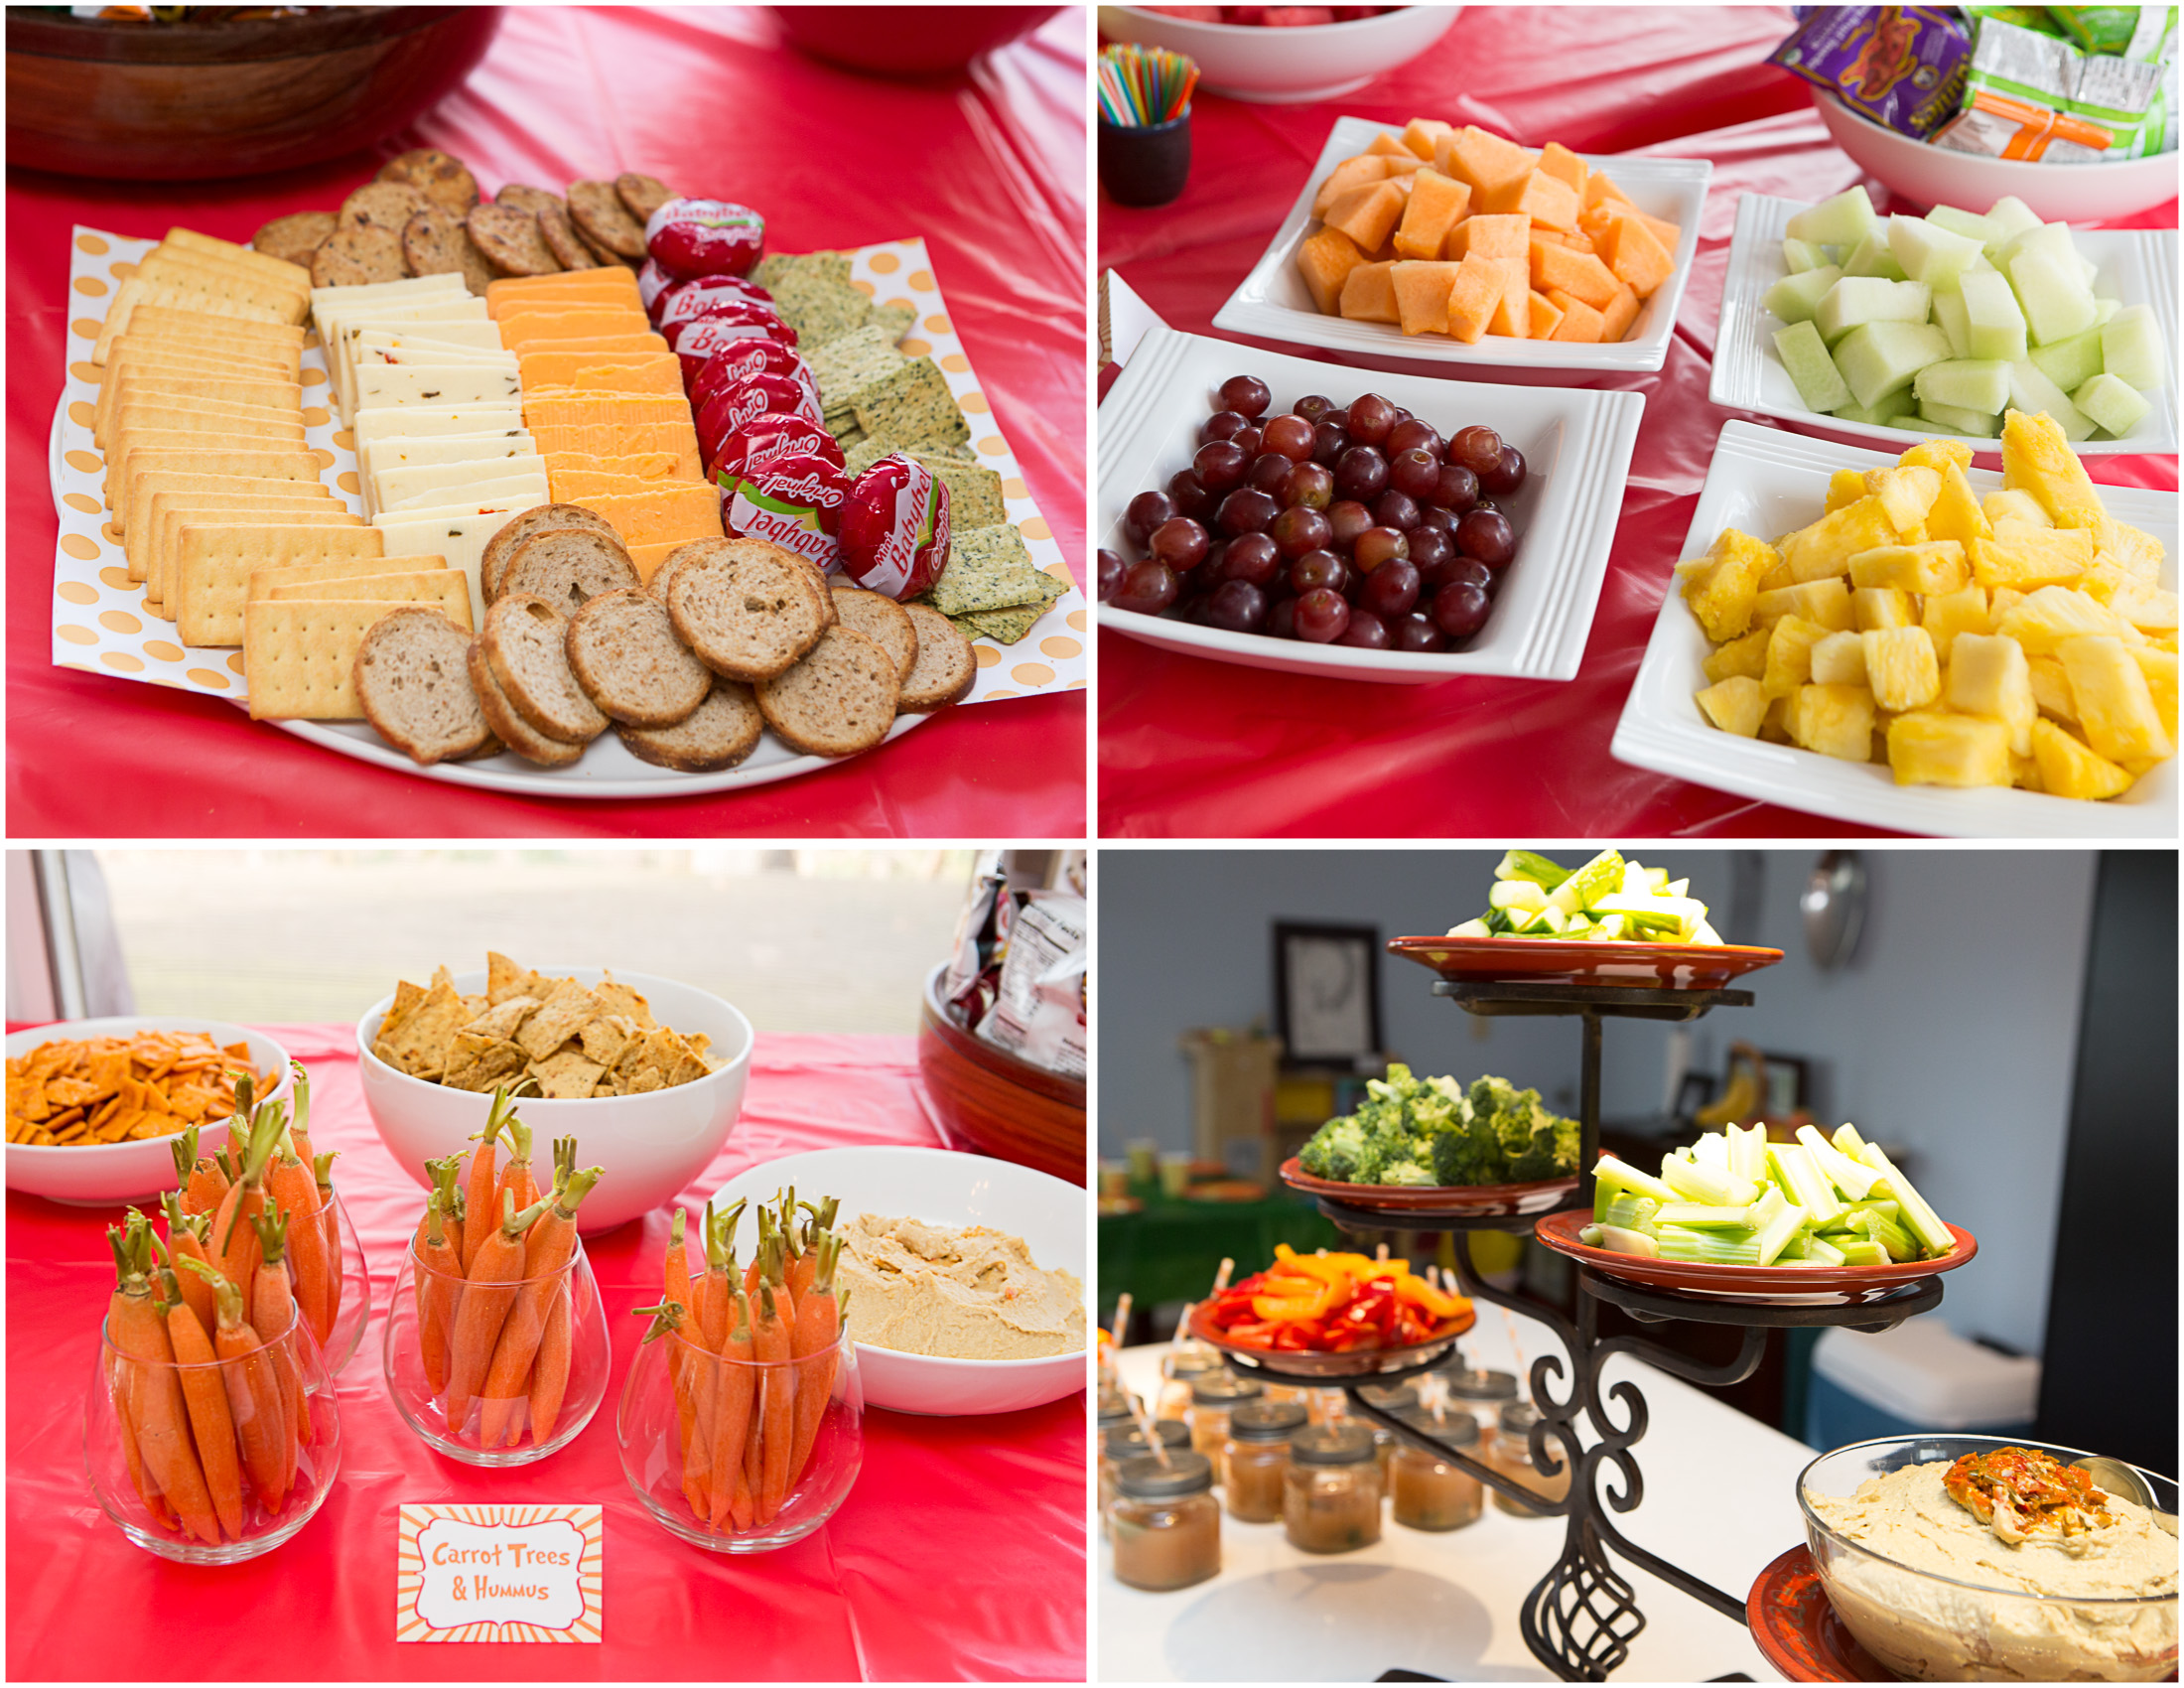 Shop for snacks table online at sdjhyqqw.ml Day Store Pick-Up· Same Day Store Pick-Up· 5% Off W/ REDcard· Free Shipping $35+Goods: Wine Rack, Desks, Dressers, Drawers, Entertainment Units, Futons, Kids Furniture.